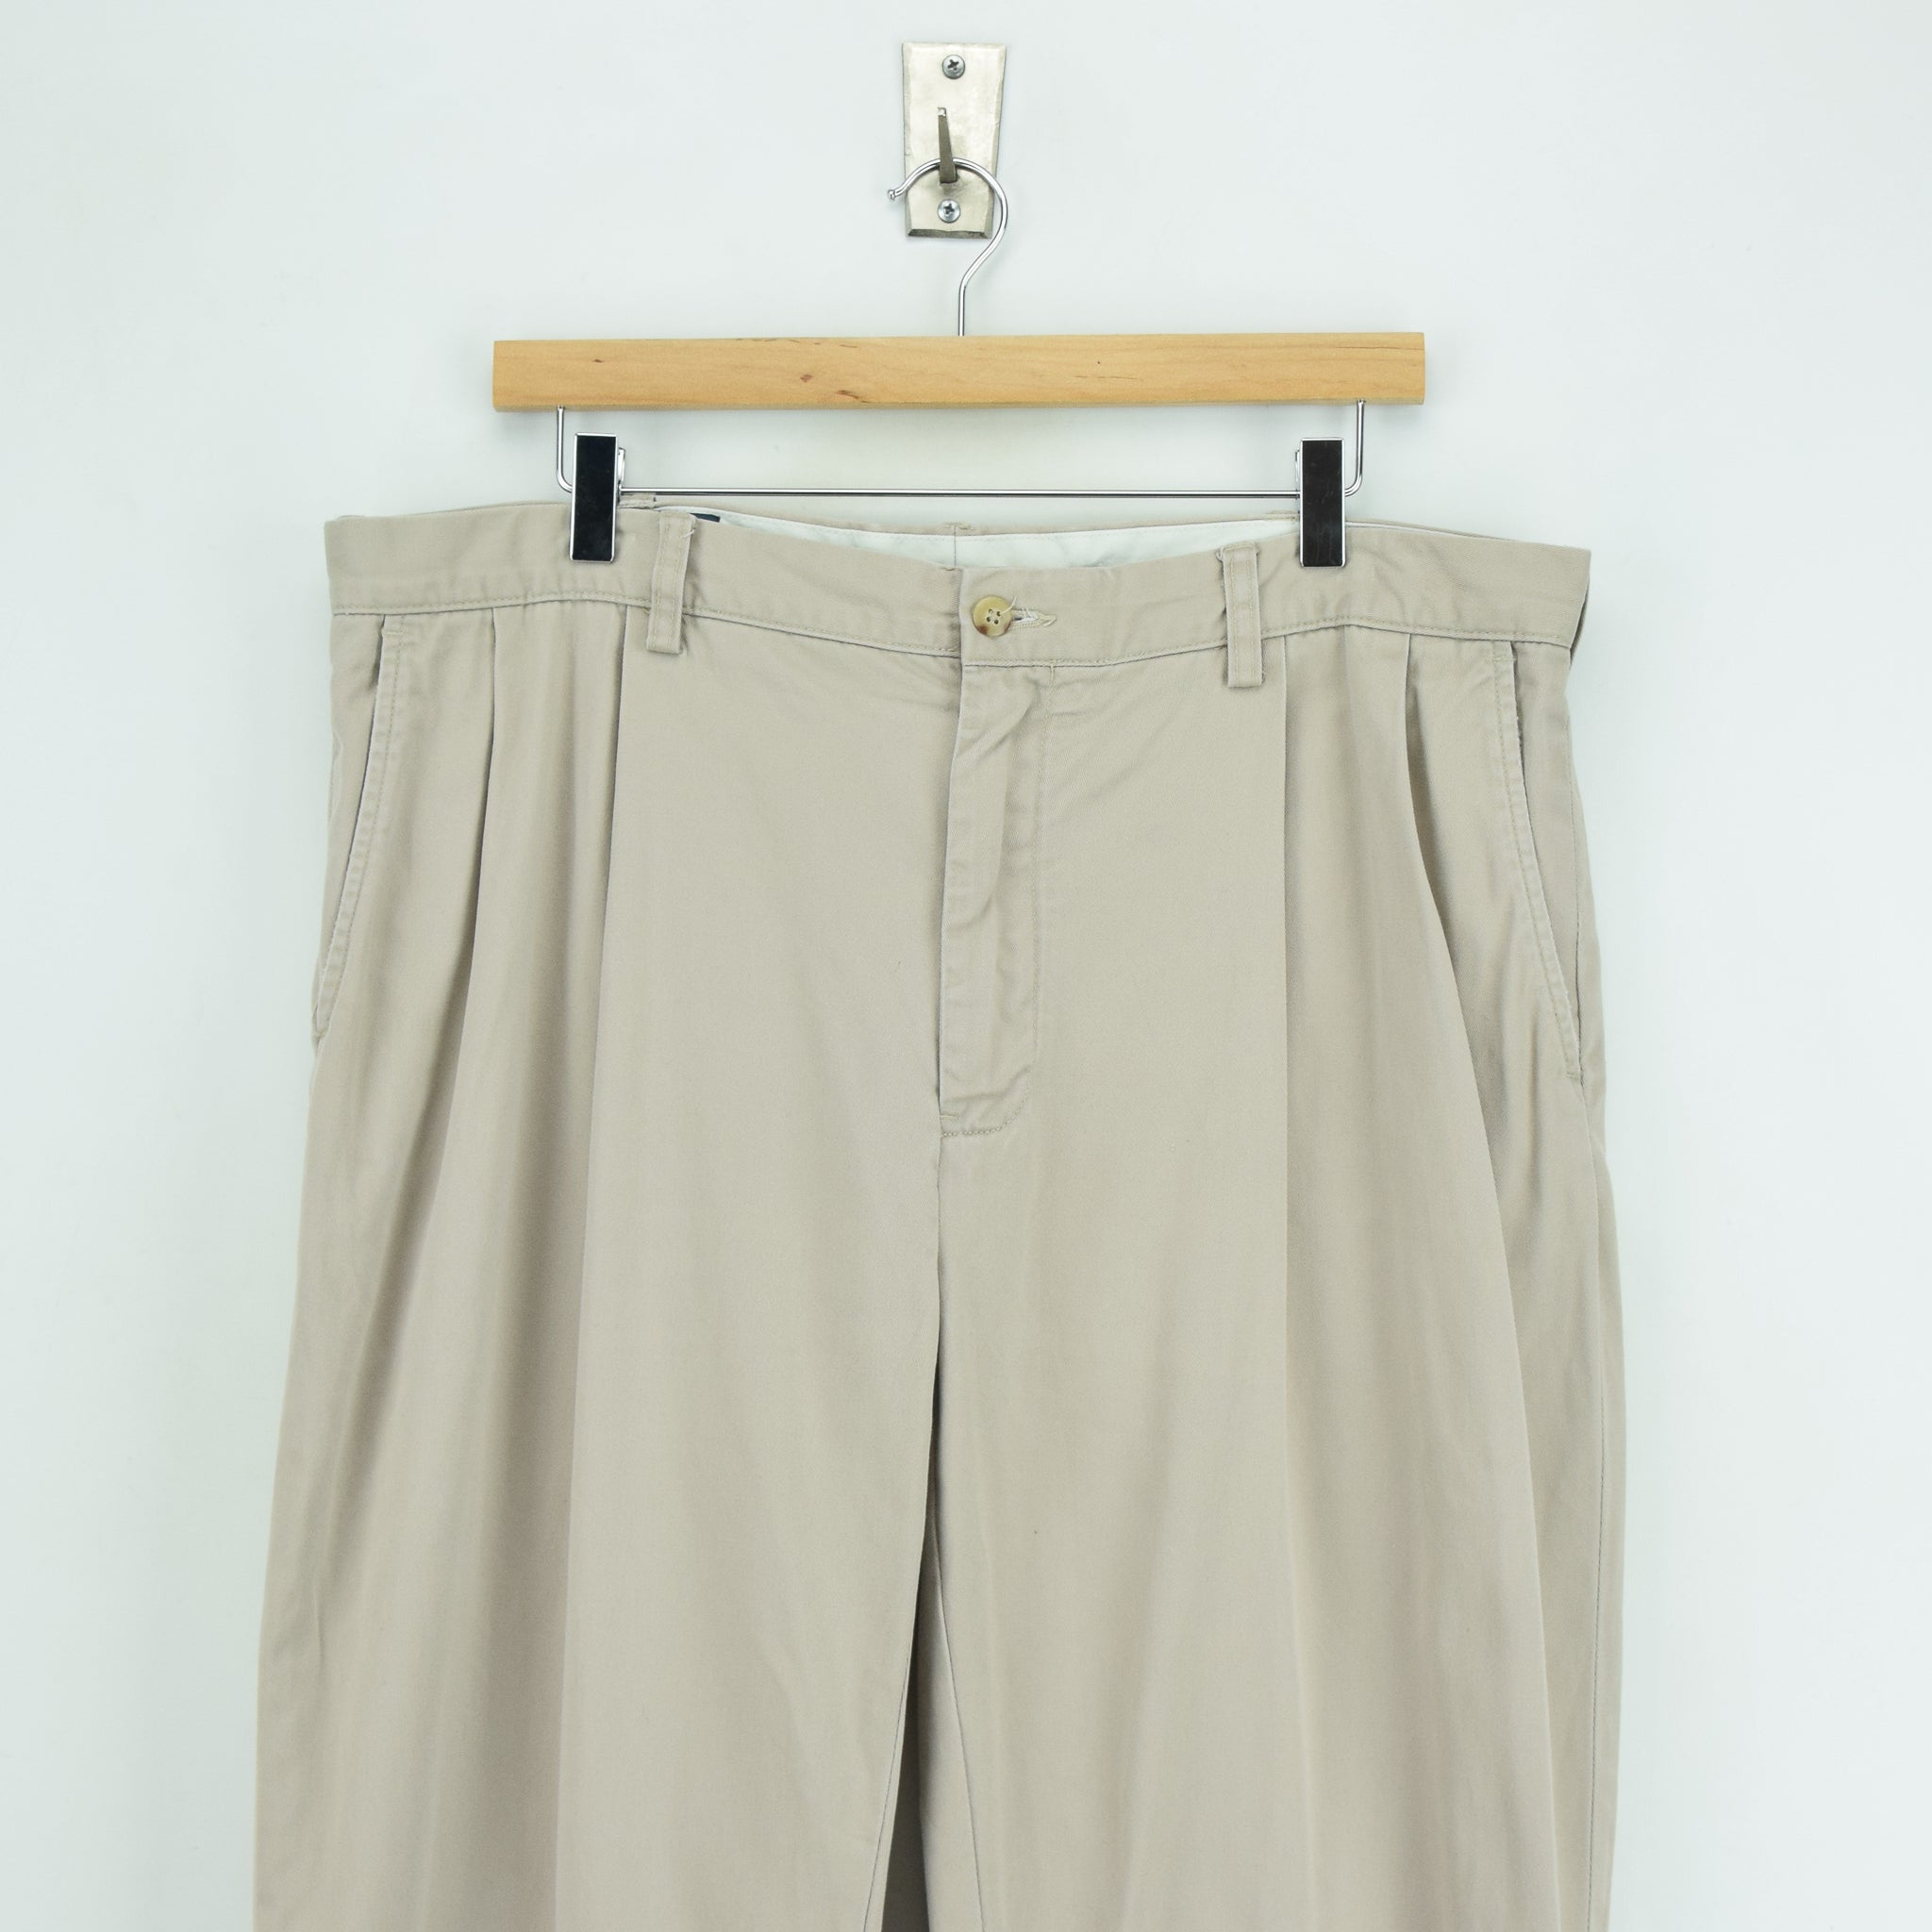 Ralph Lauren Polo Prospect Pant Chinos Stone Pleated Front Trousers 36 W 34 L front waist